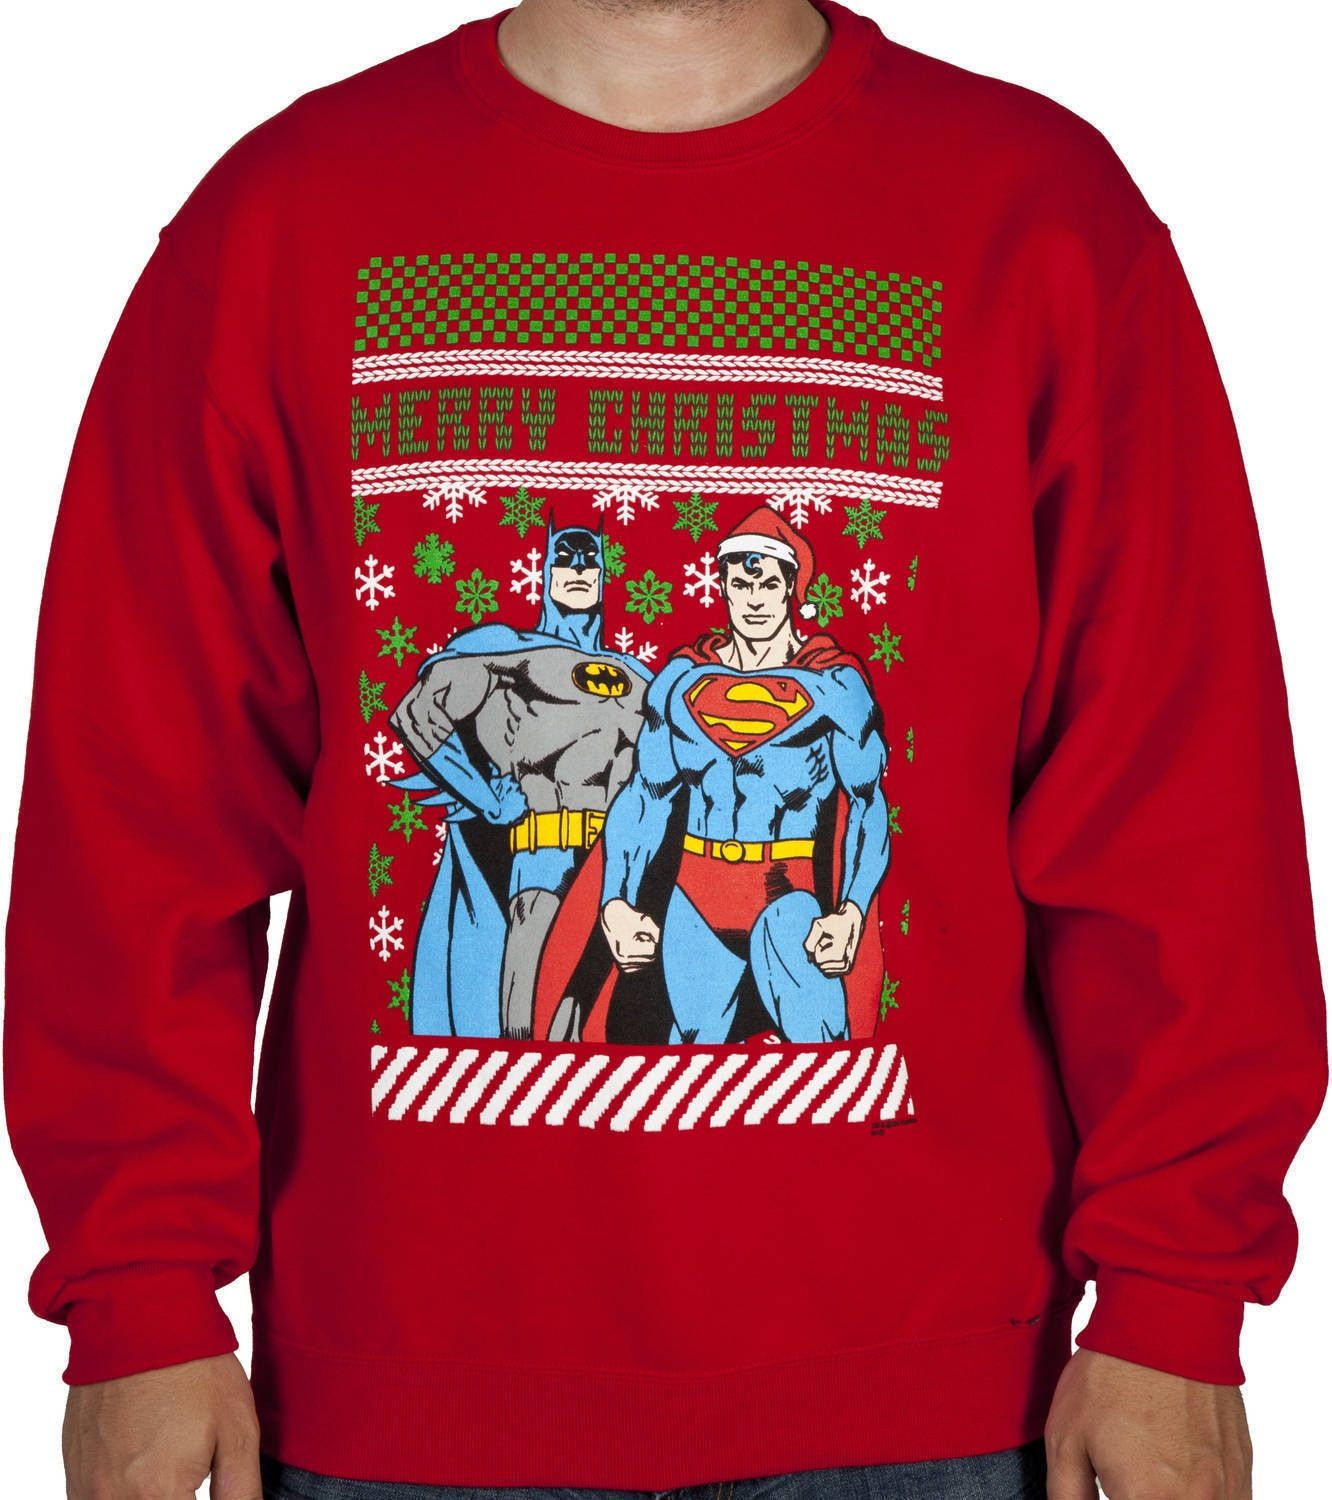 Pin by Carol Lewis on Christmas Sweaters | Pinterest | Xmas